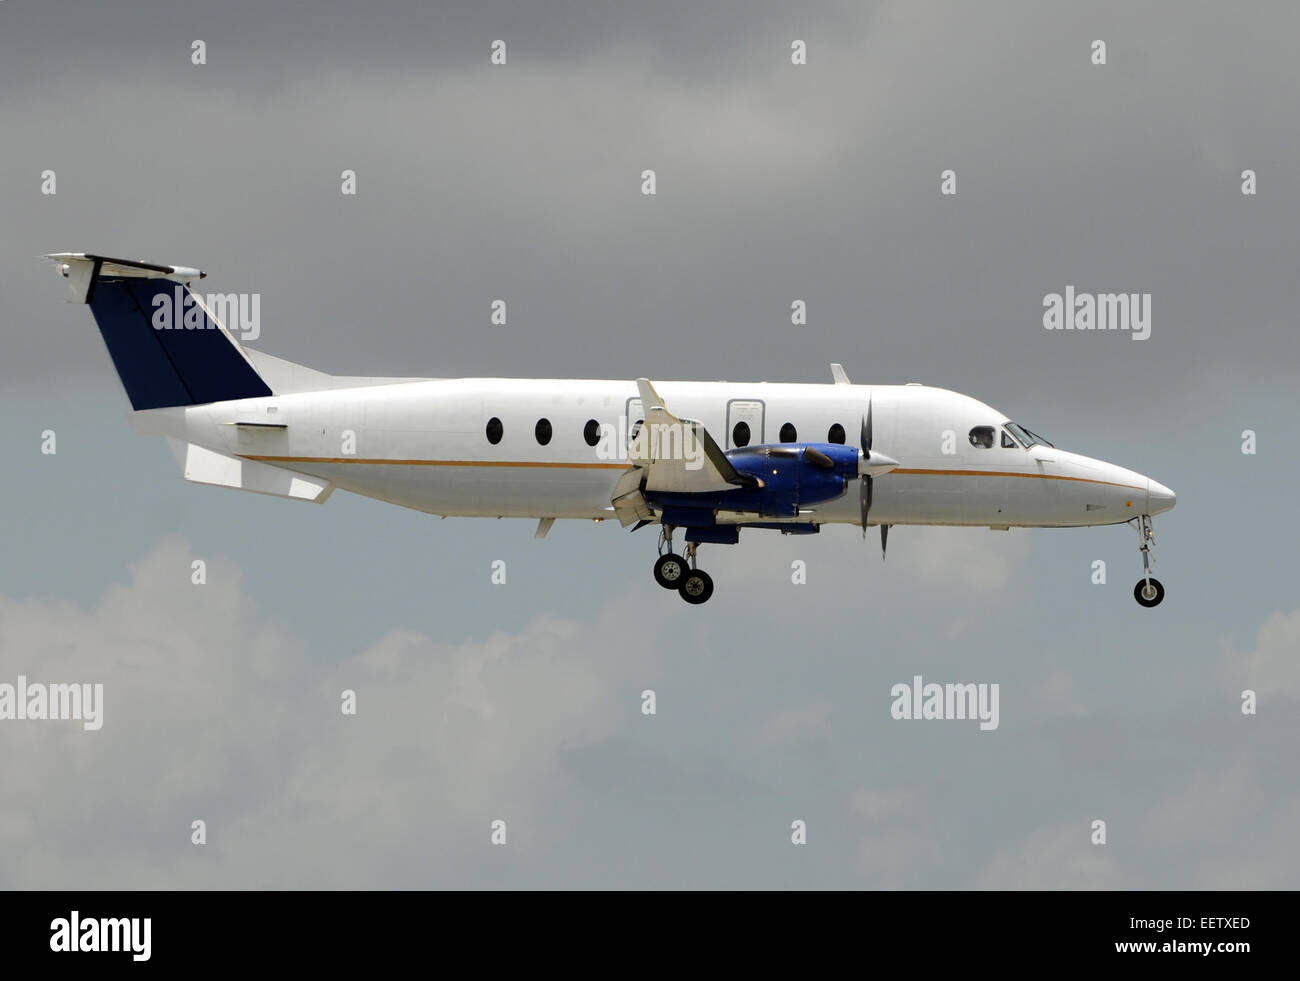 Turboprop airplane for regional flight side view - Stock Image